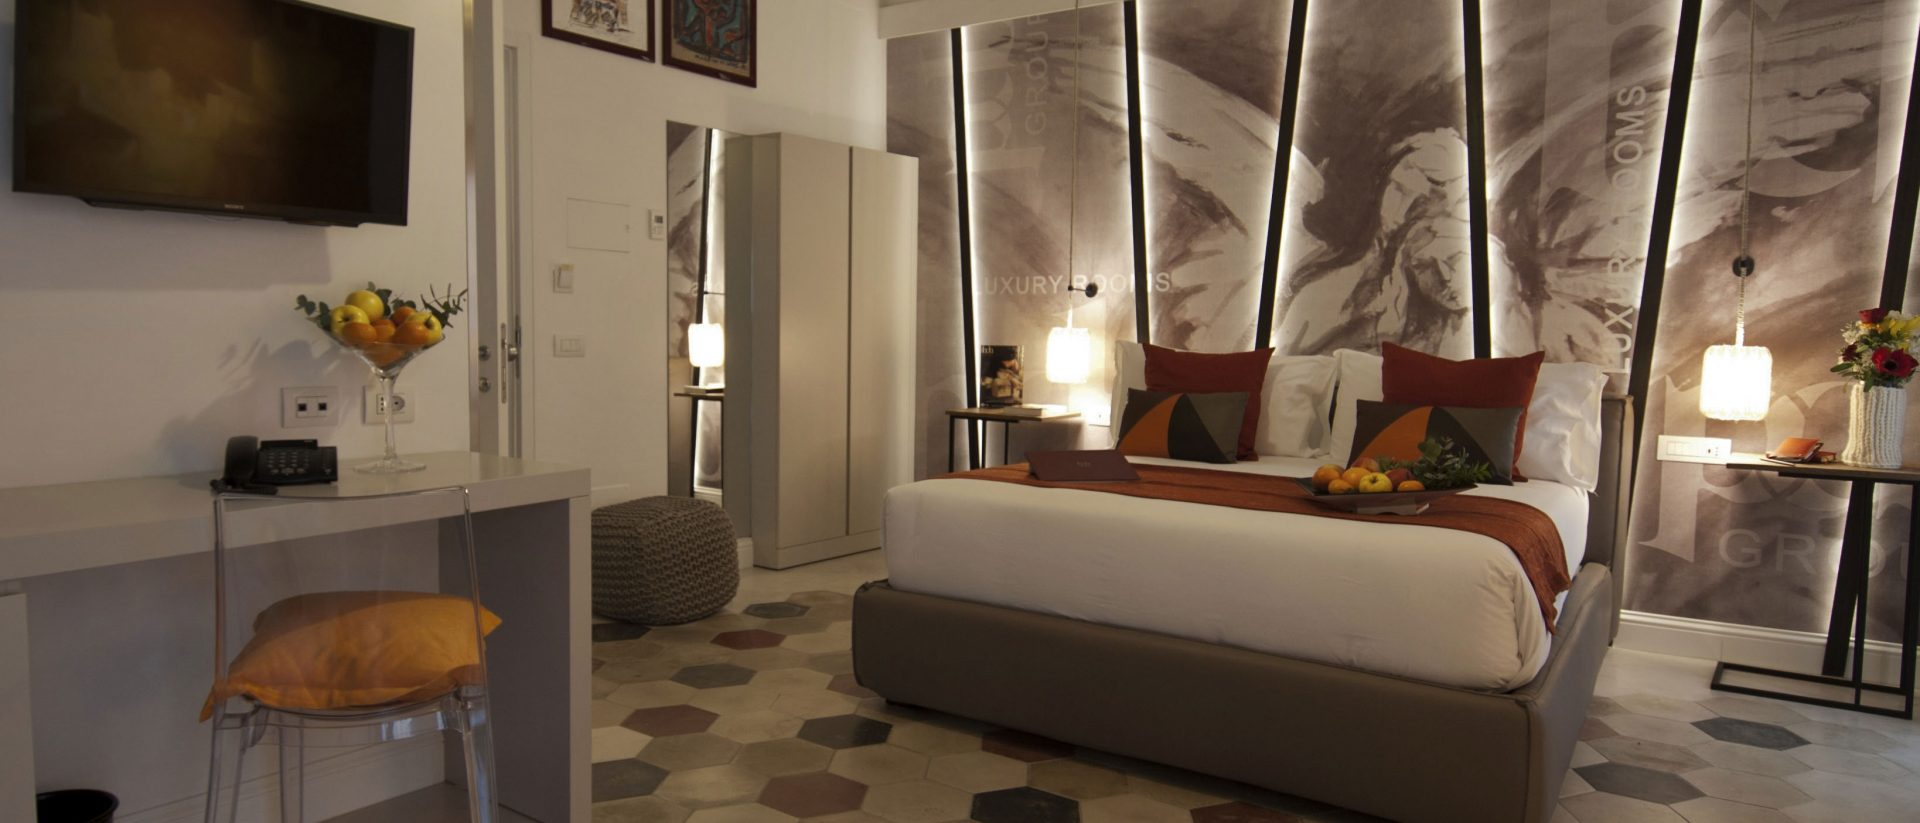 Quadruple room BDB Luxury Rooms Navona Angeli